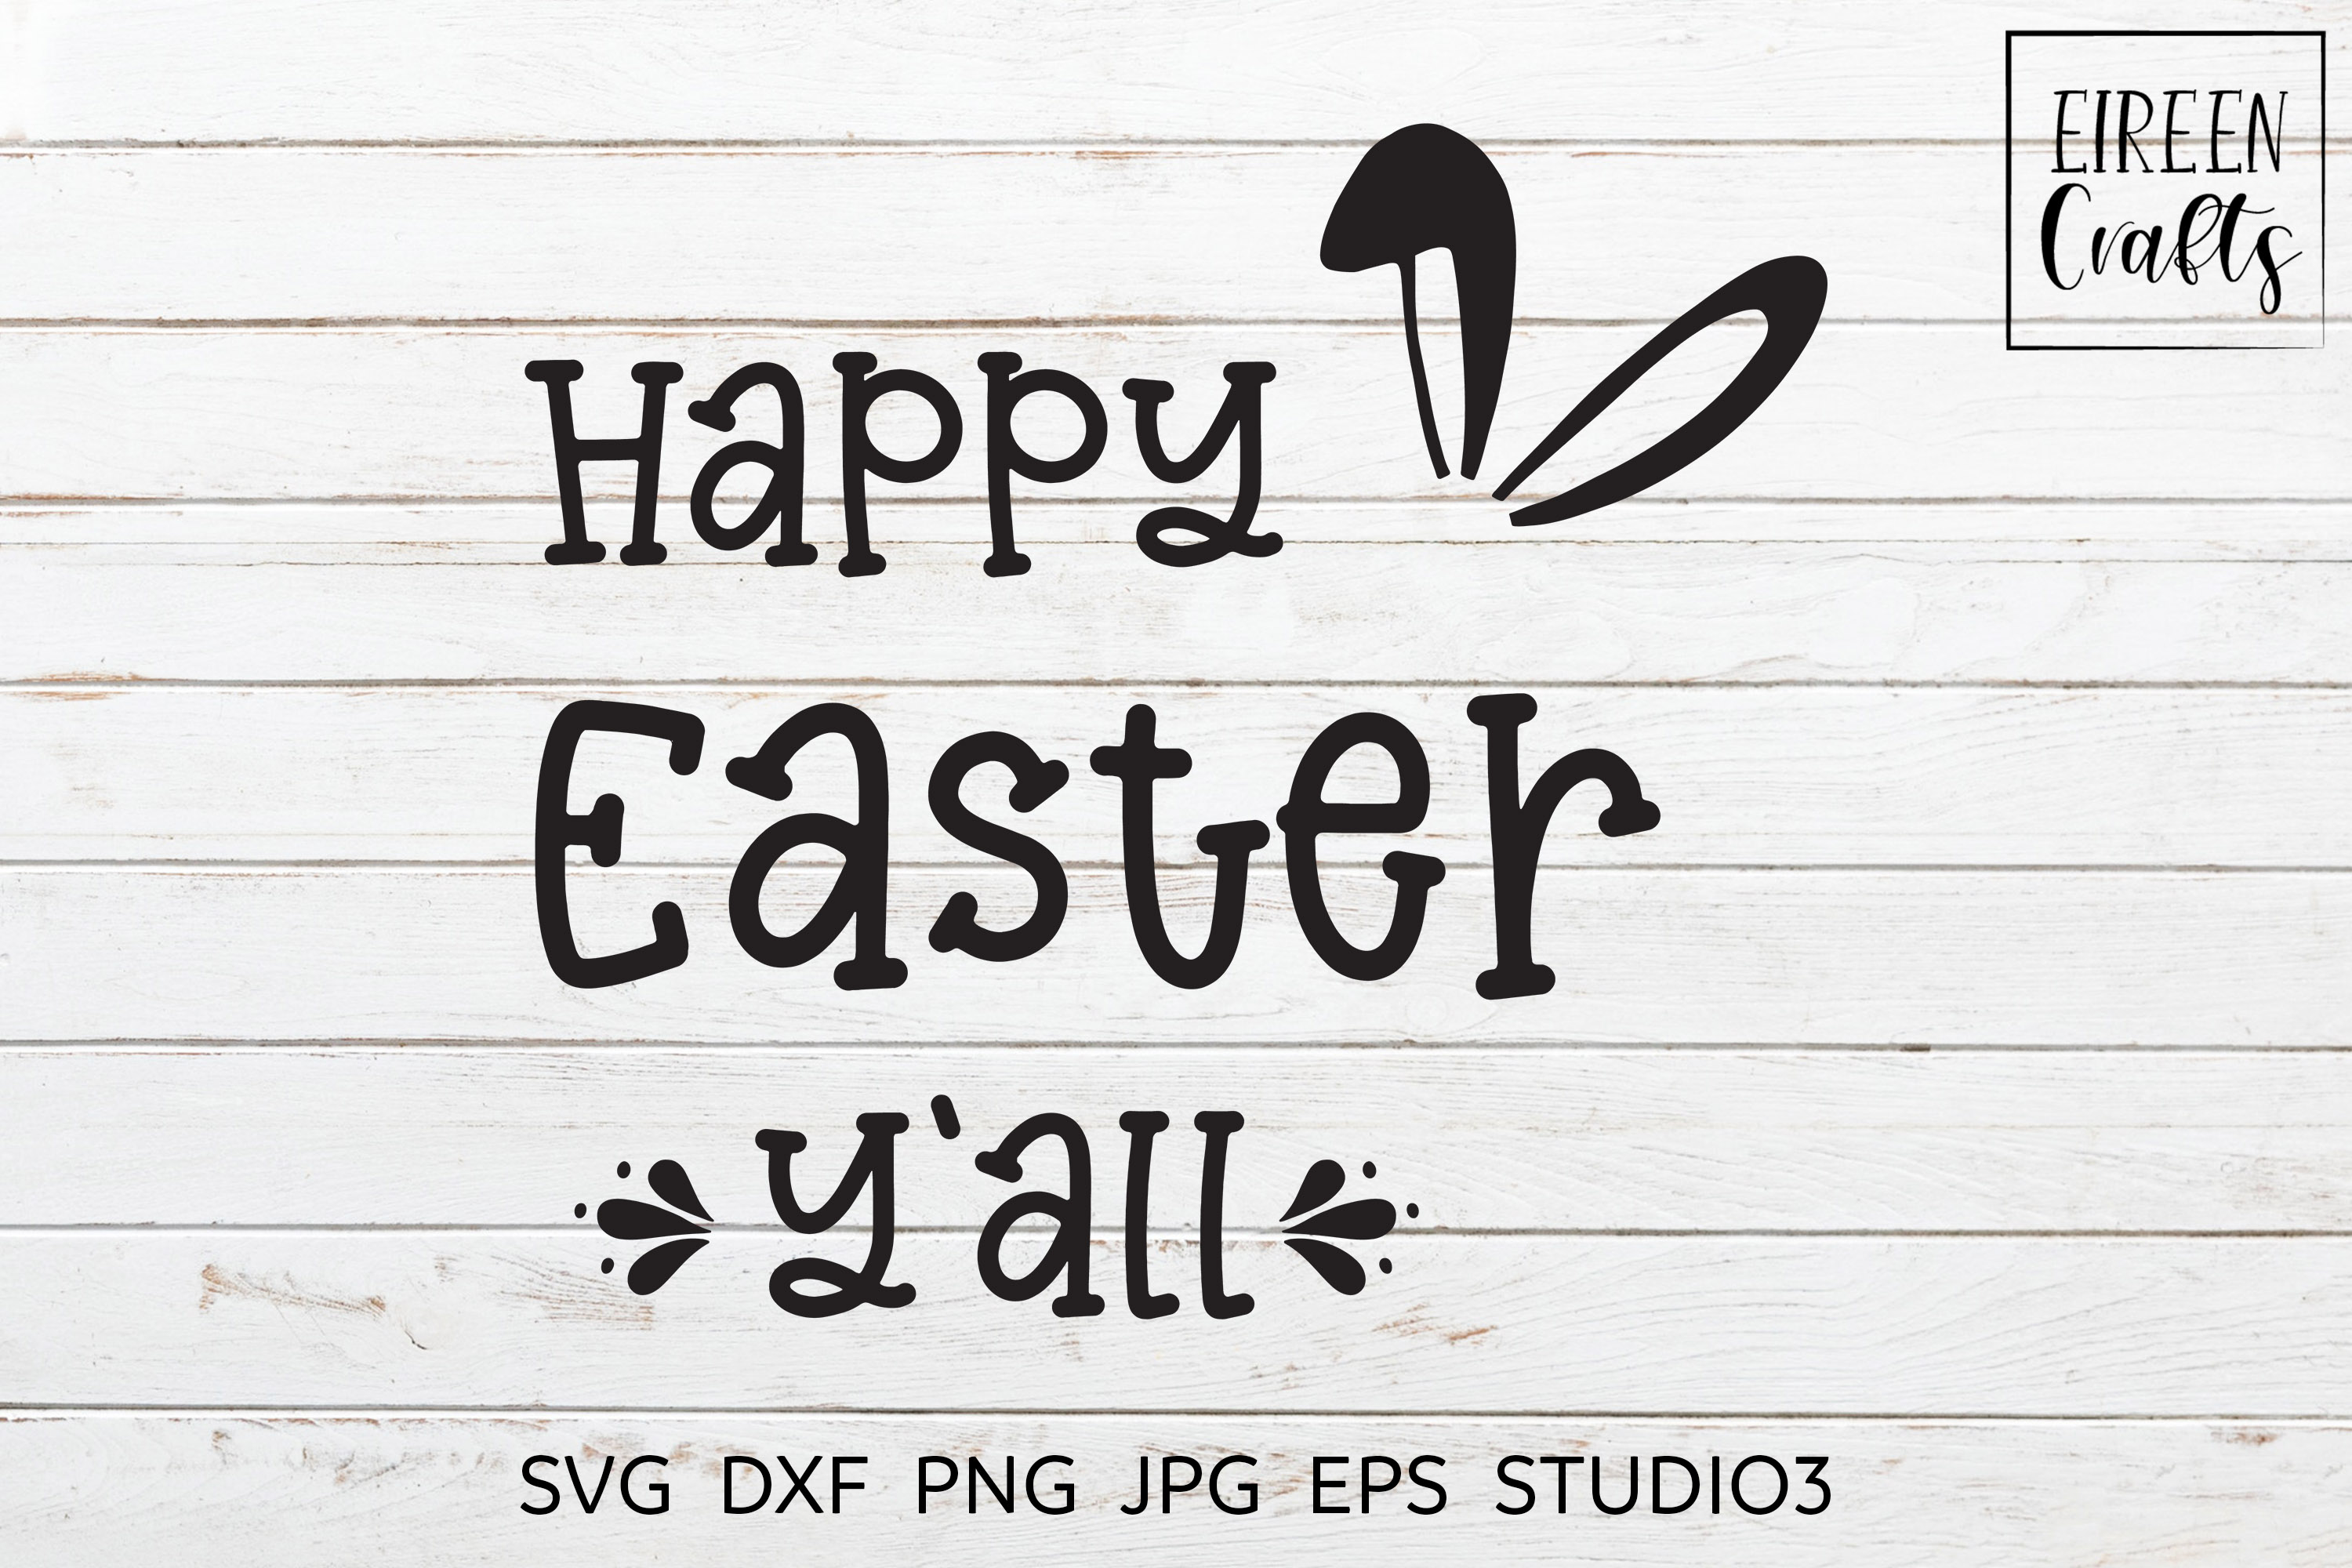 Happy Easter Y'all SVG - cut file for Cricut & Silhouette example image 3